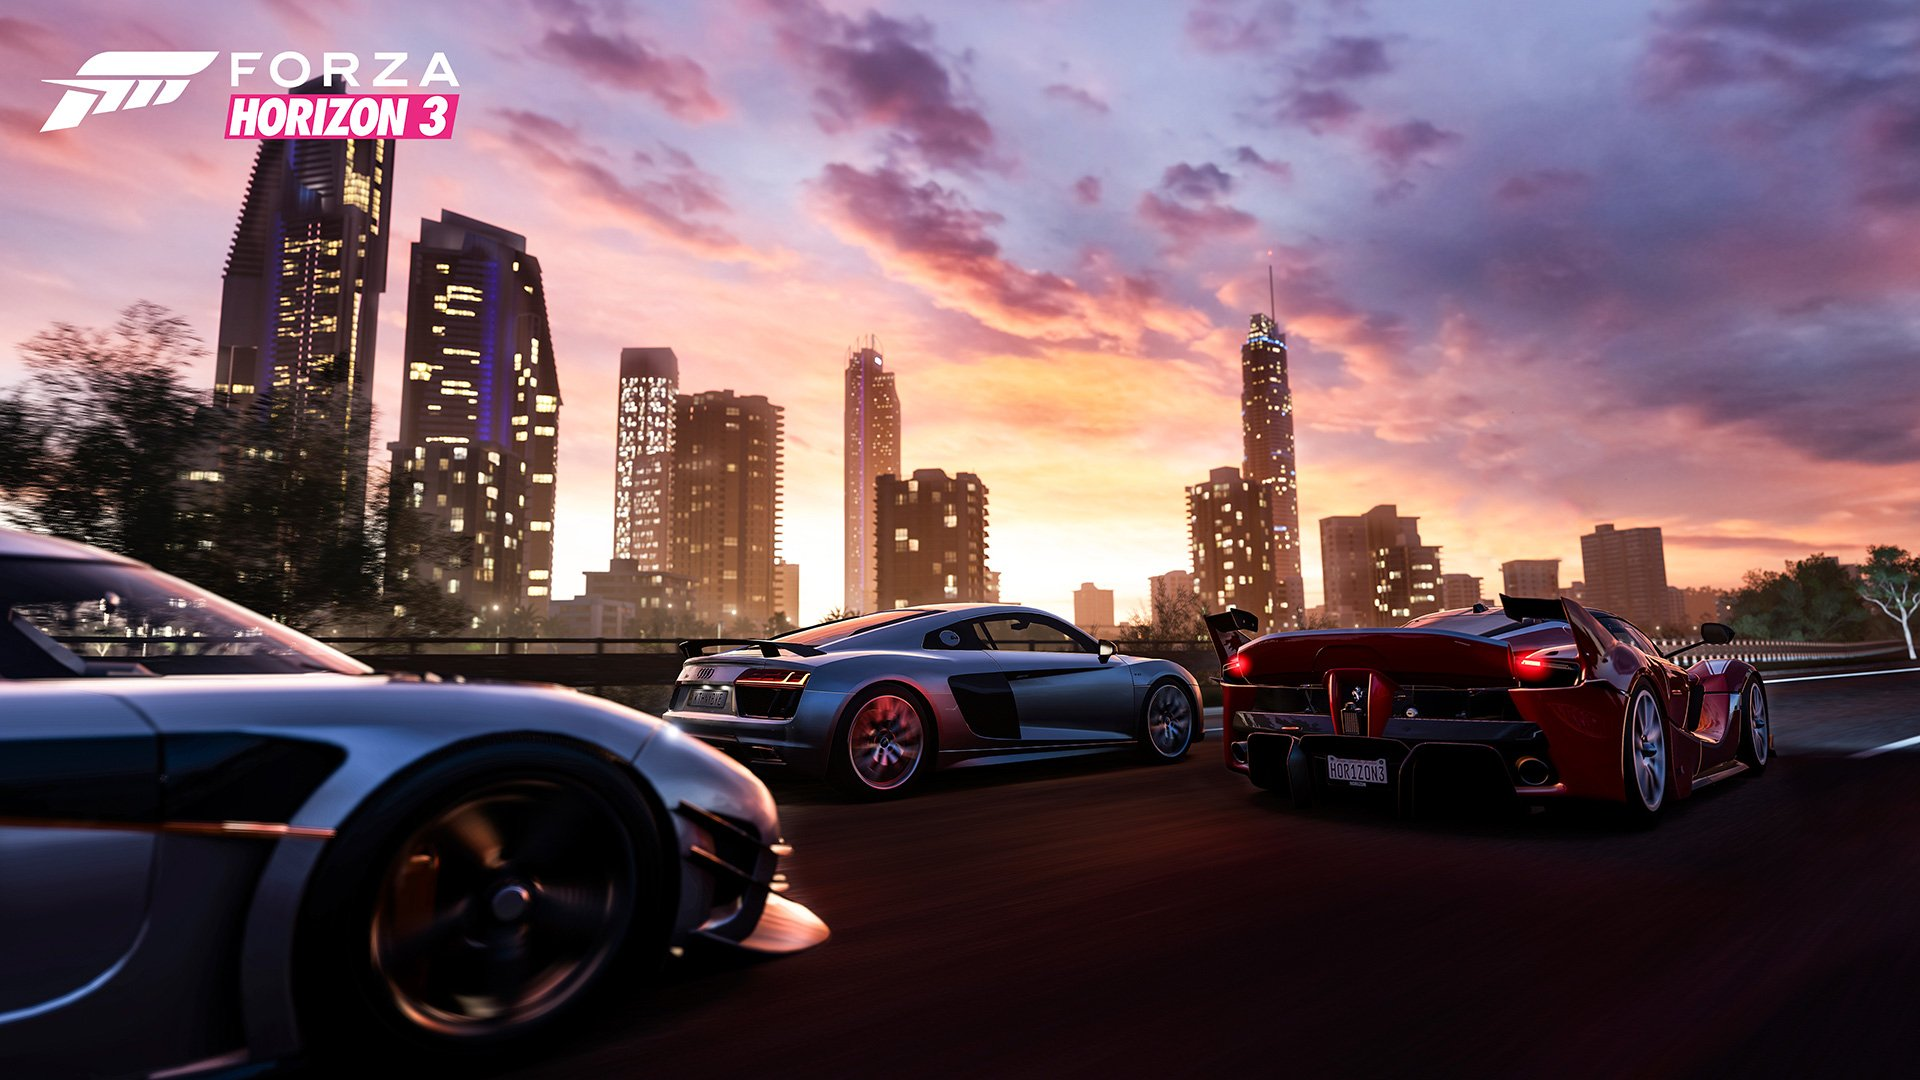 369 Forza Horizon 3 HD Wallpapers | Background Images